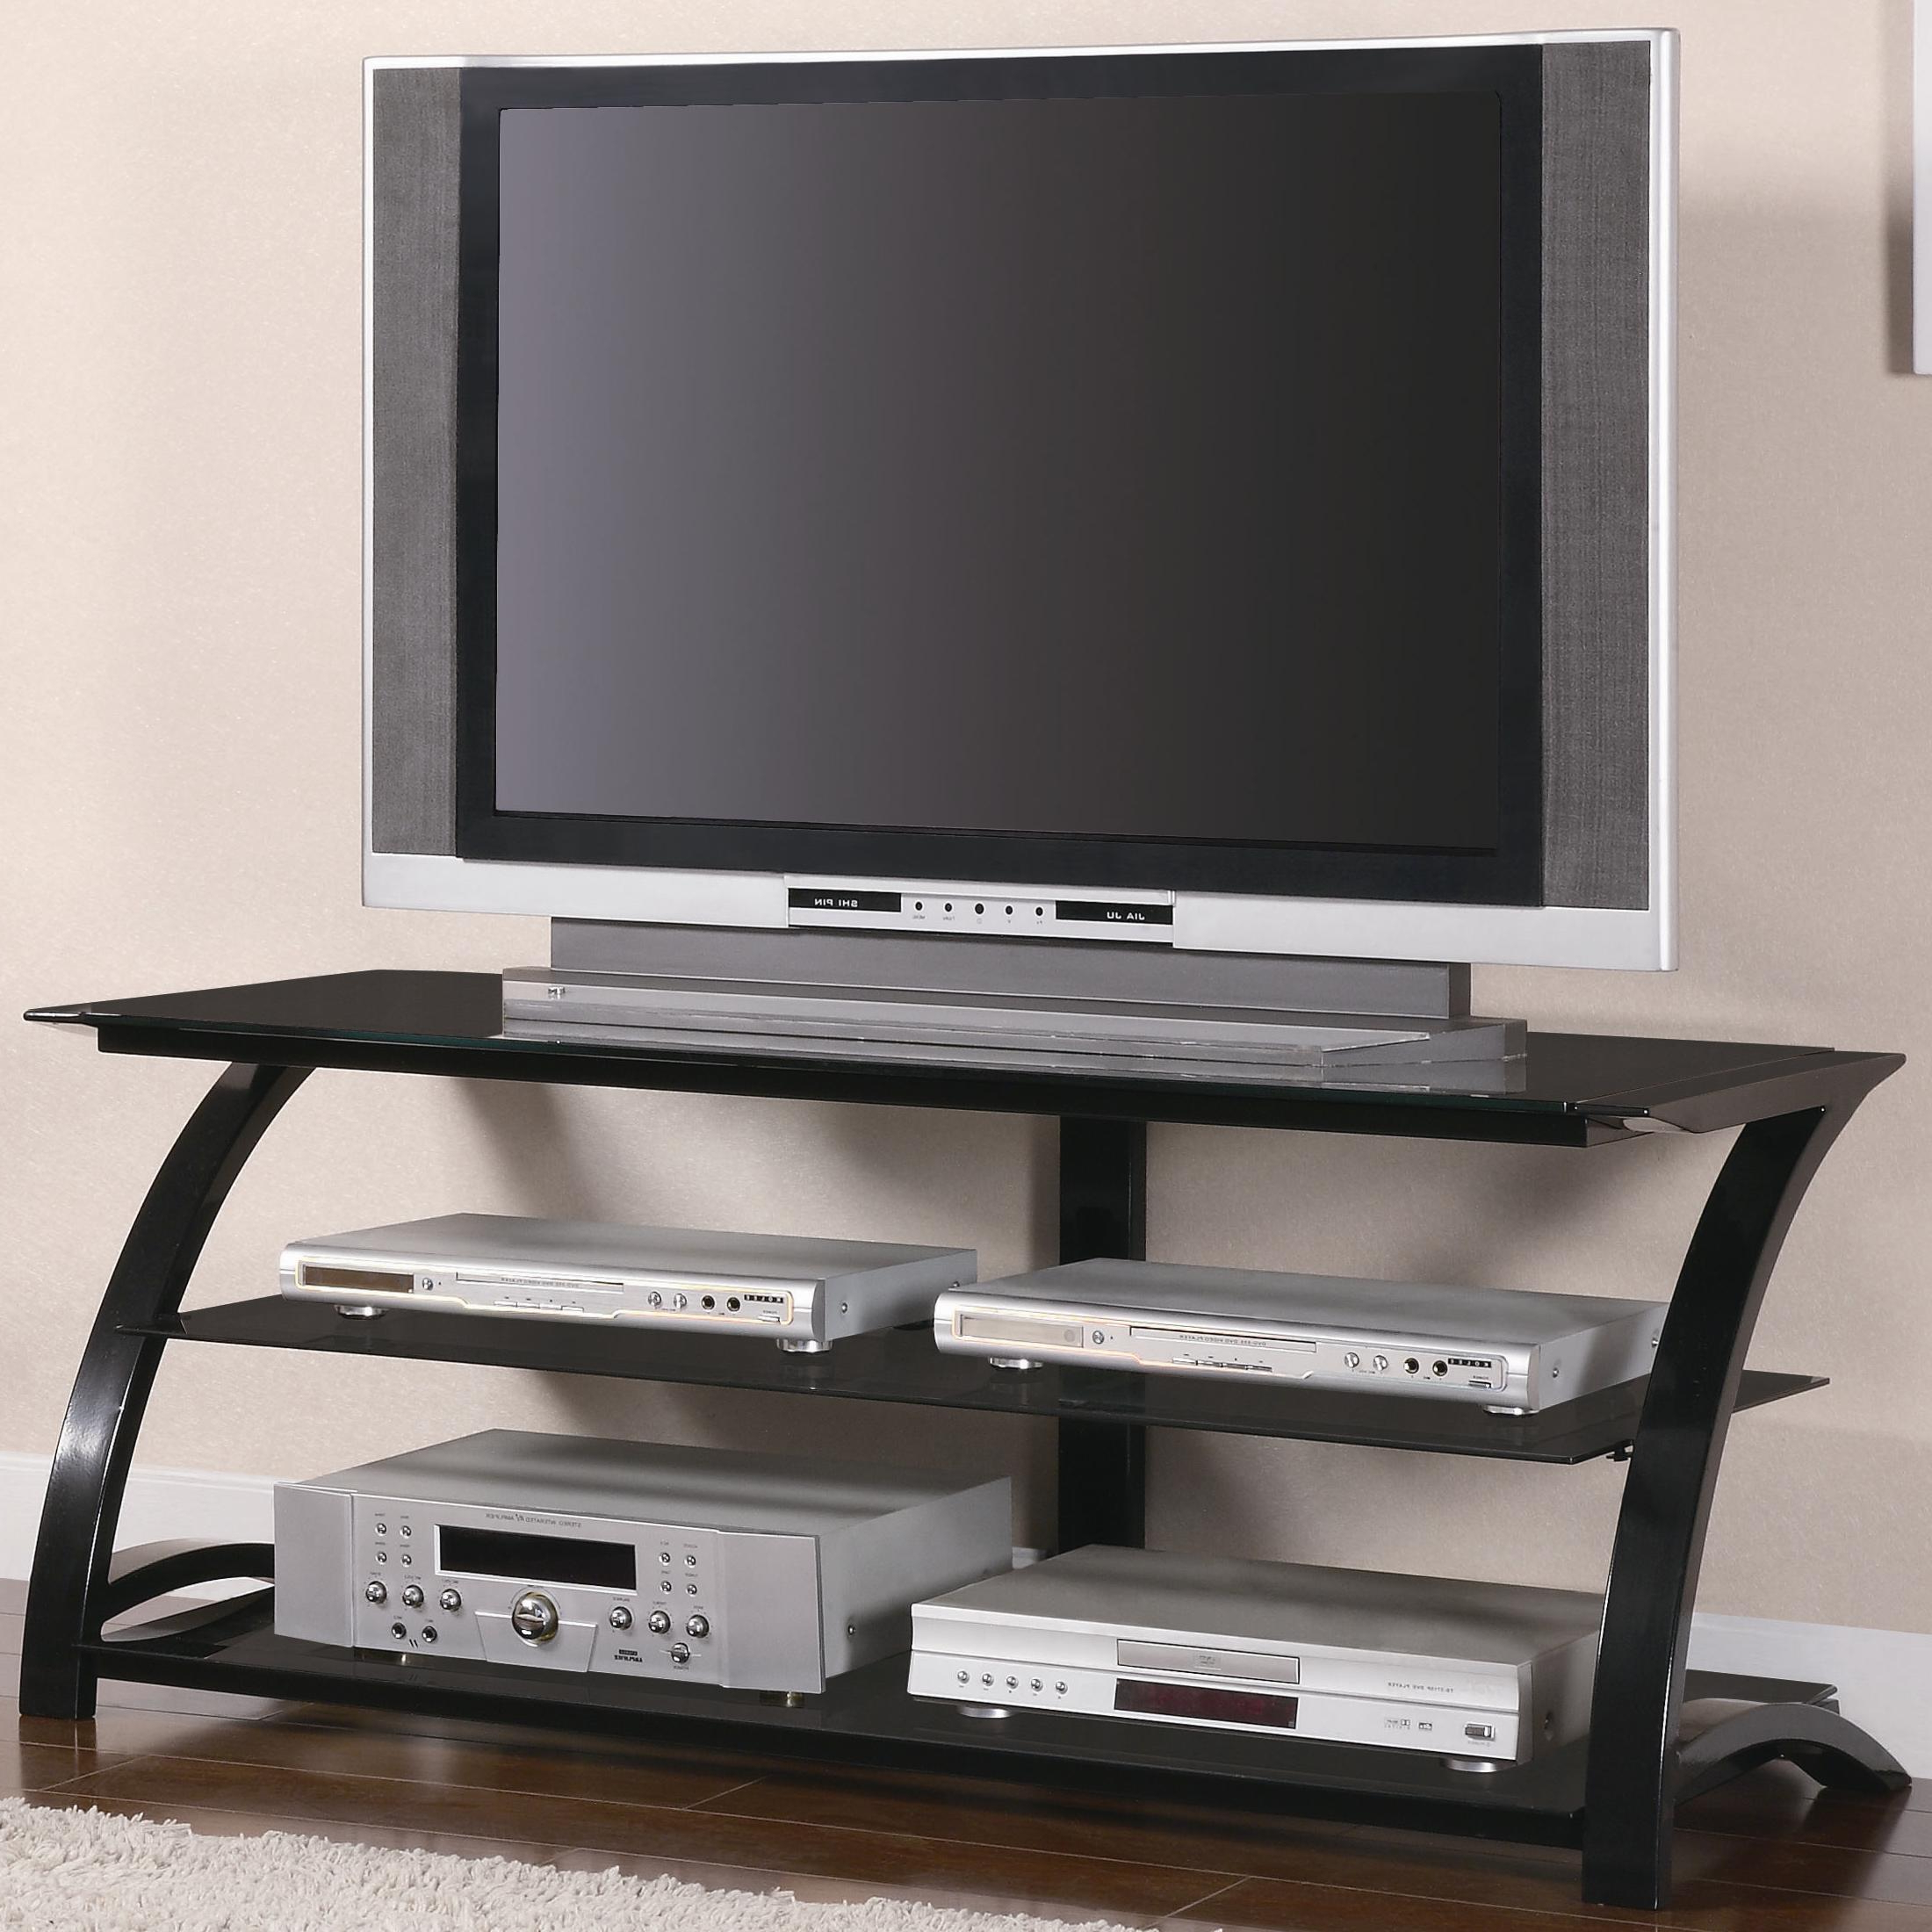 Famous Coaster Tv Stands 700664 Contemporary Metal And Glass Media Console Pertaining To Black Glass Tv Cabinets (View 11 of 20)